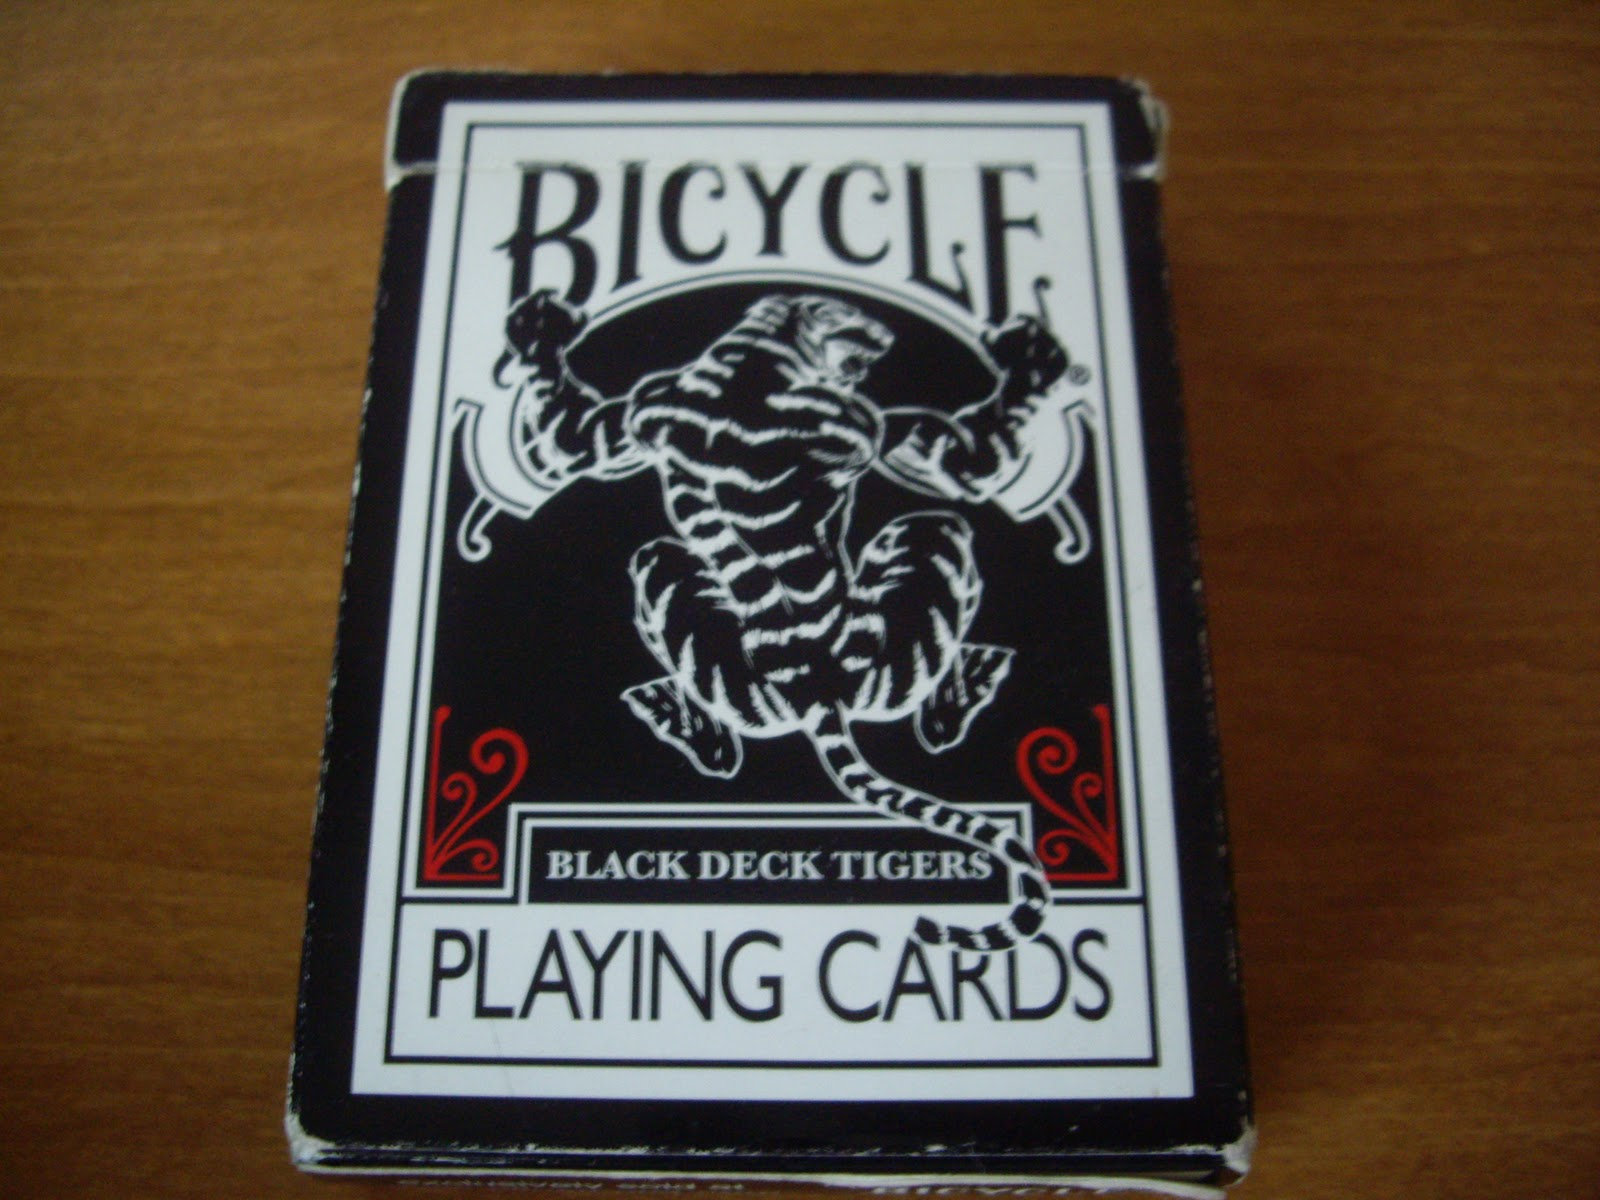 Bicycle And All Types Of Playing Cards